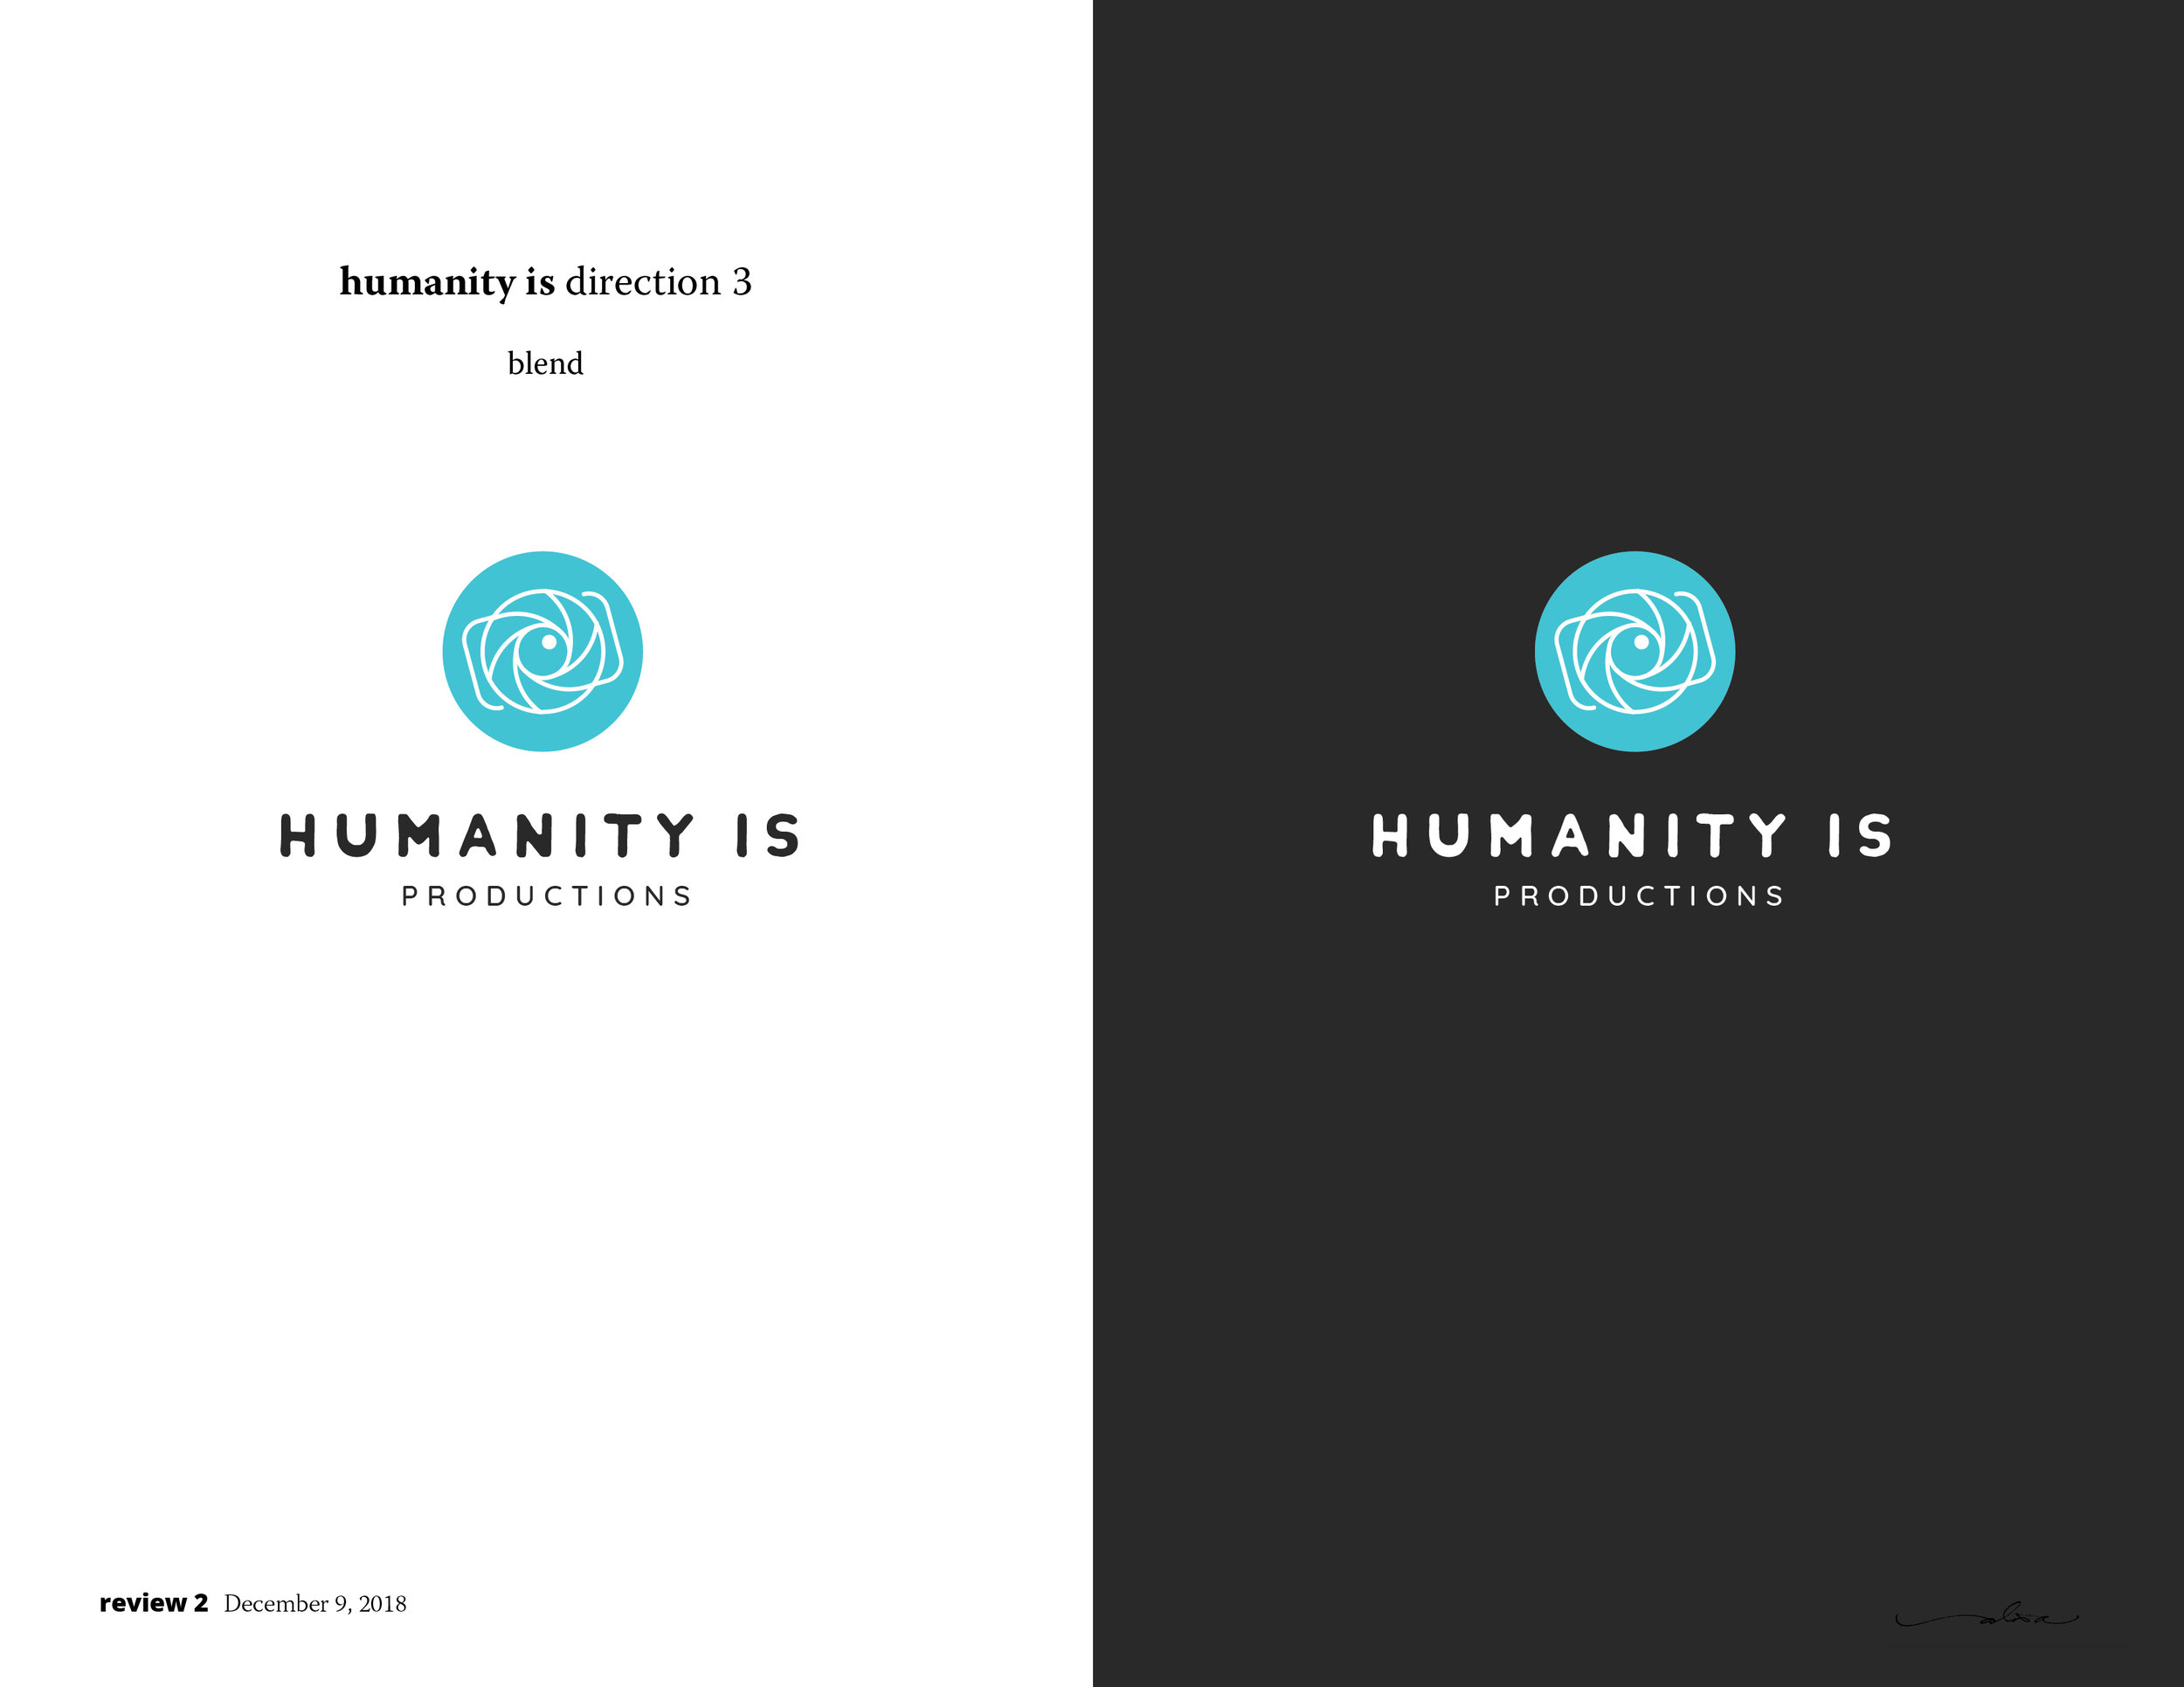 20181209_HumanityIs-Logo_Review2-v0-013.jpg